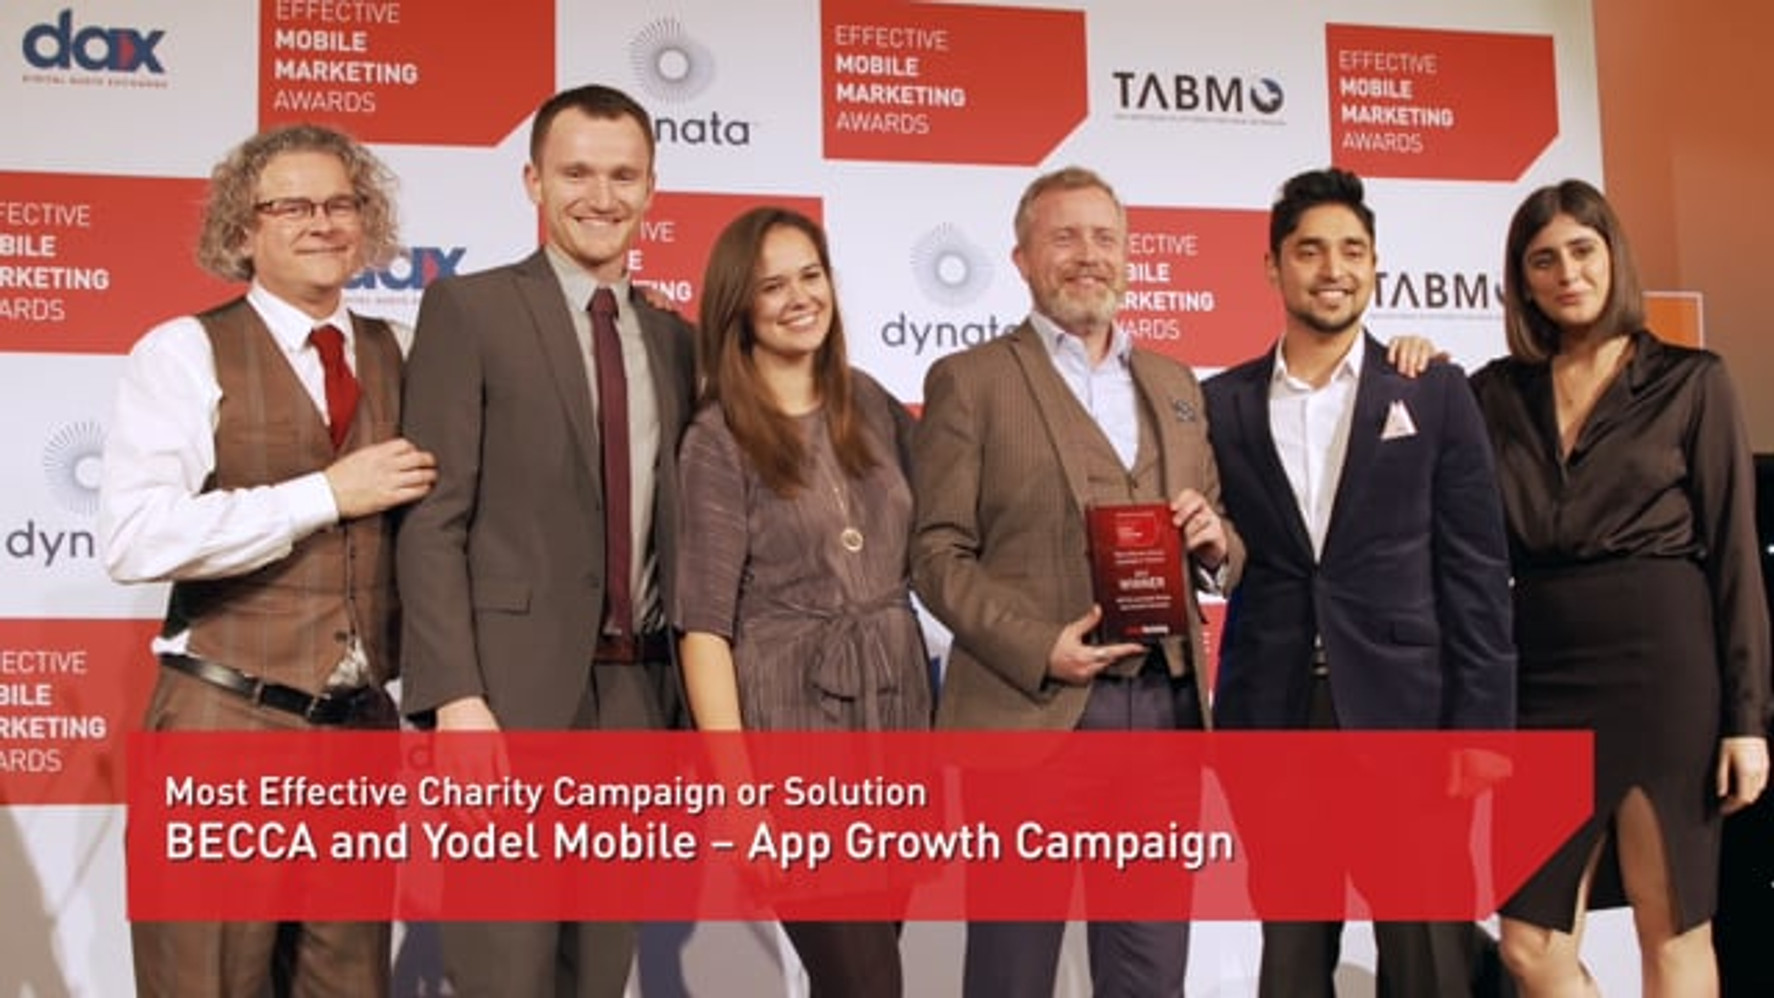 Effective Mobile Marketing Awards 2019